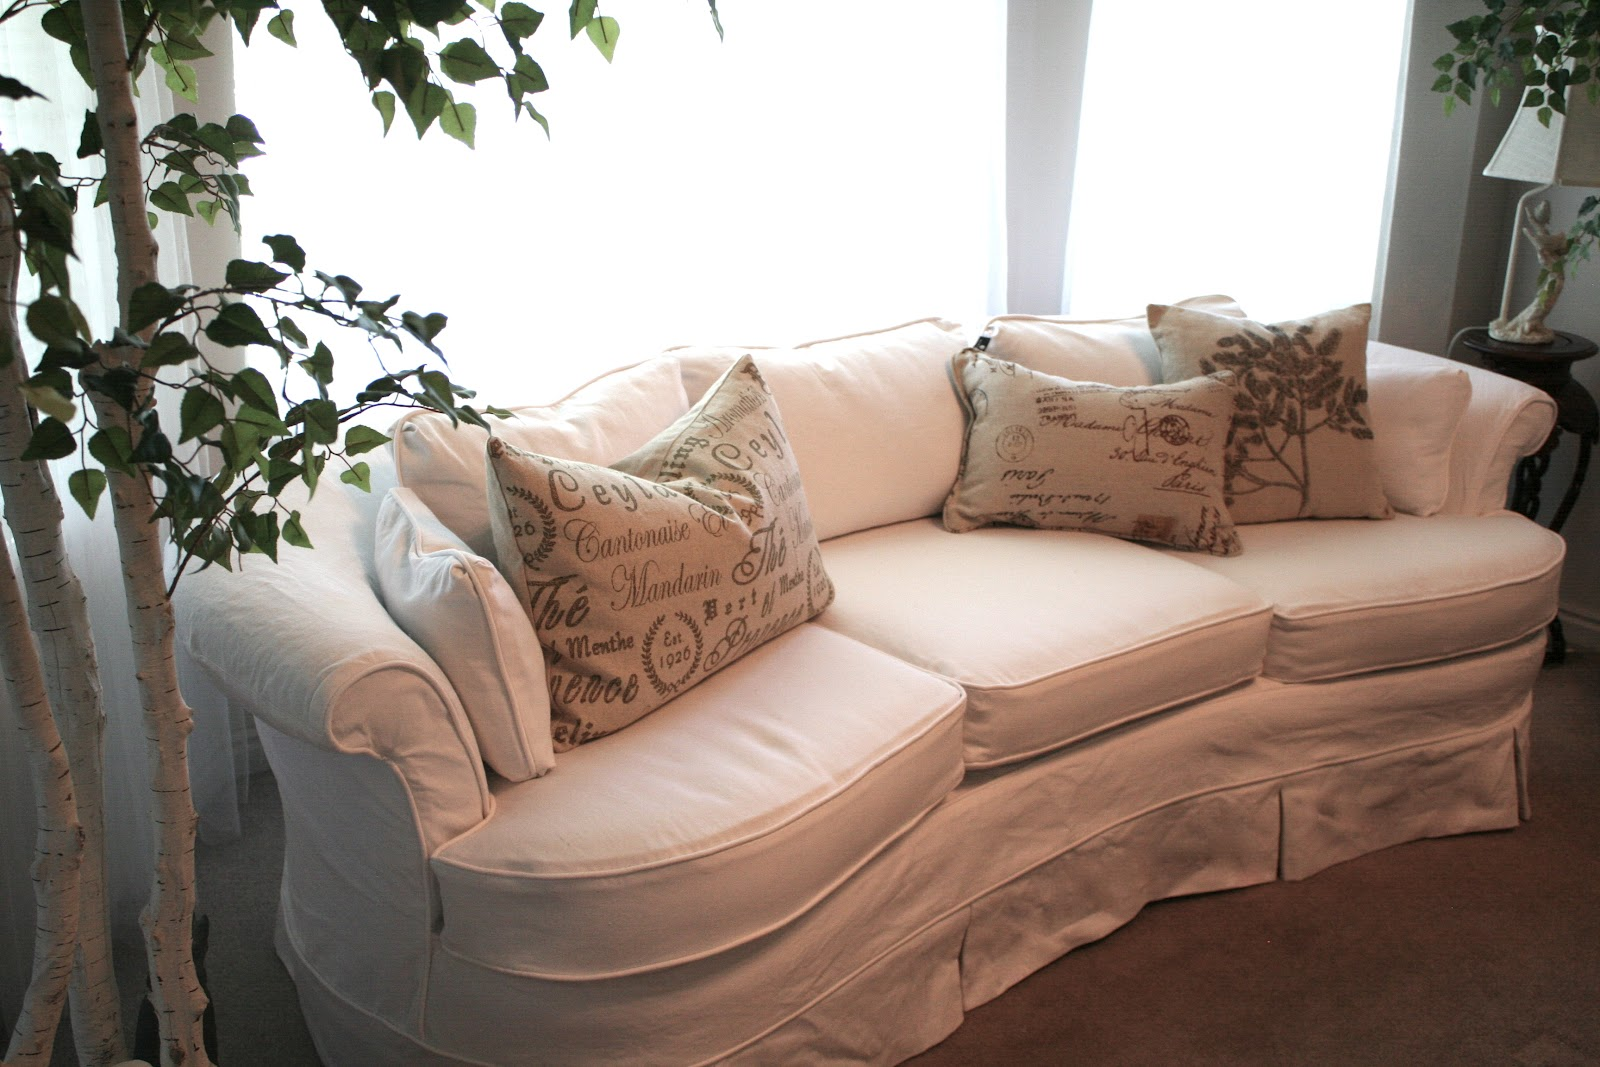 White Curvy Couch Slipcover Slipcovers By Shelley ~ White Linen Sofa Slipcover